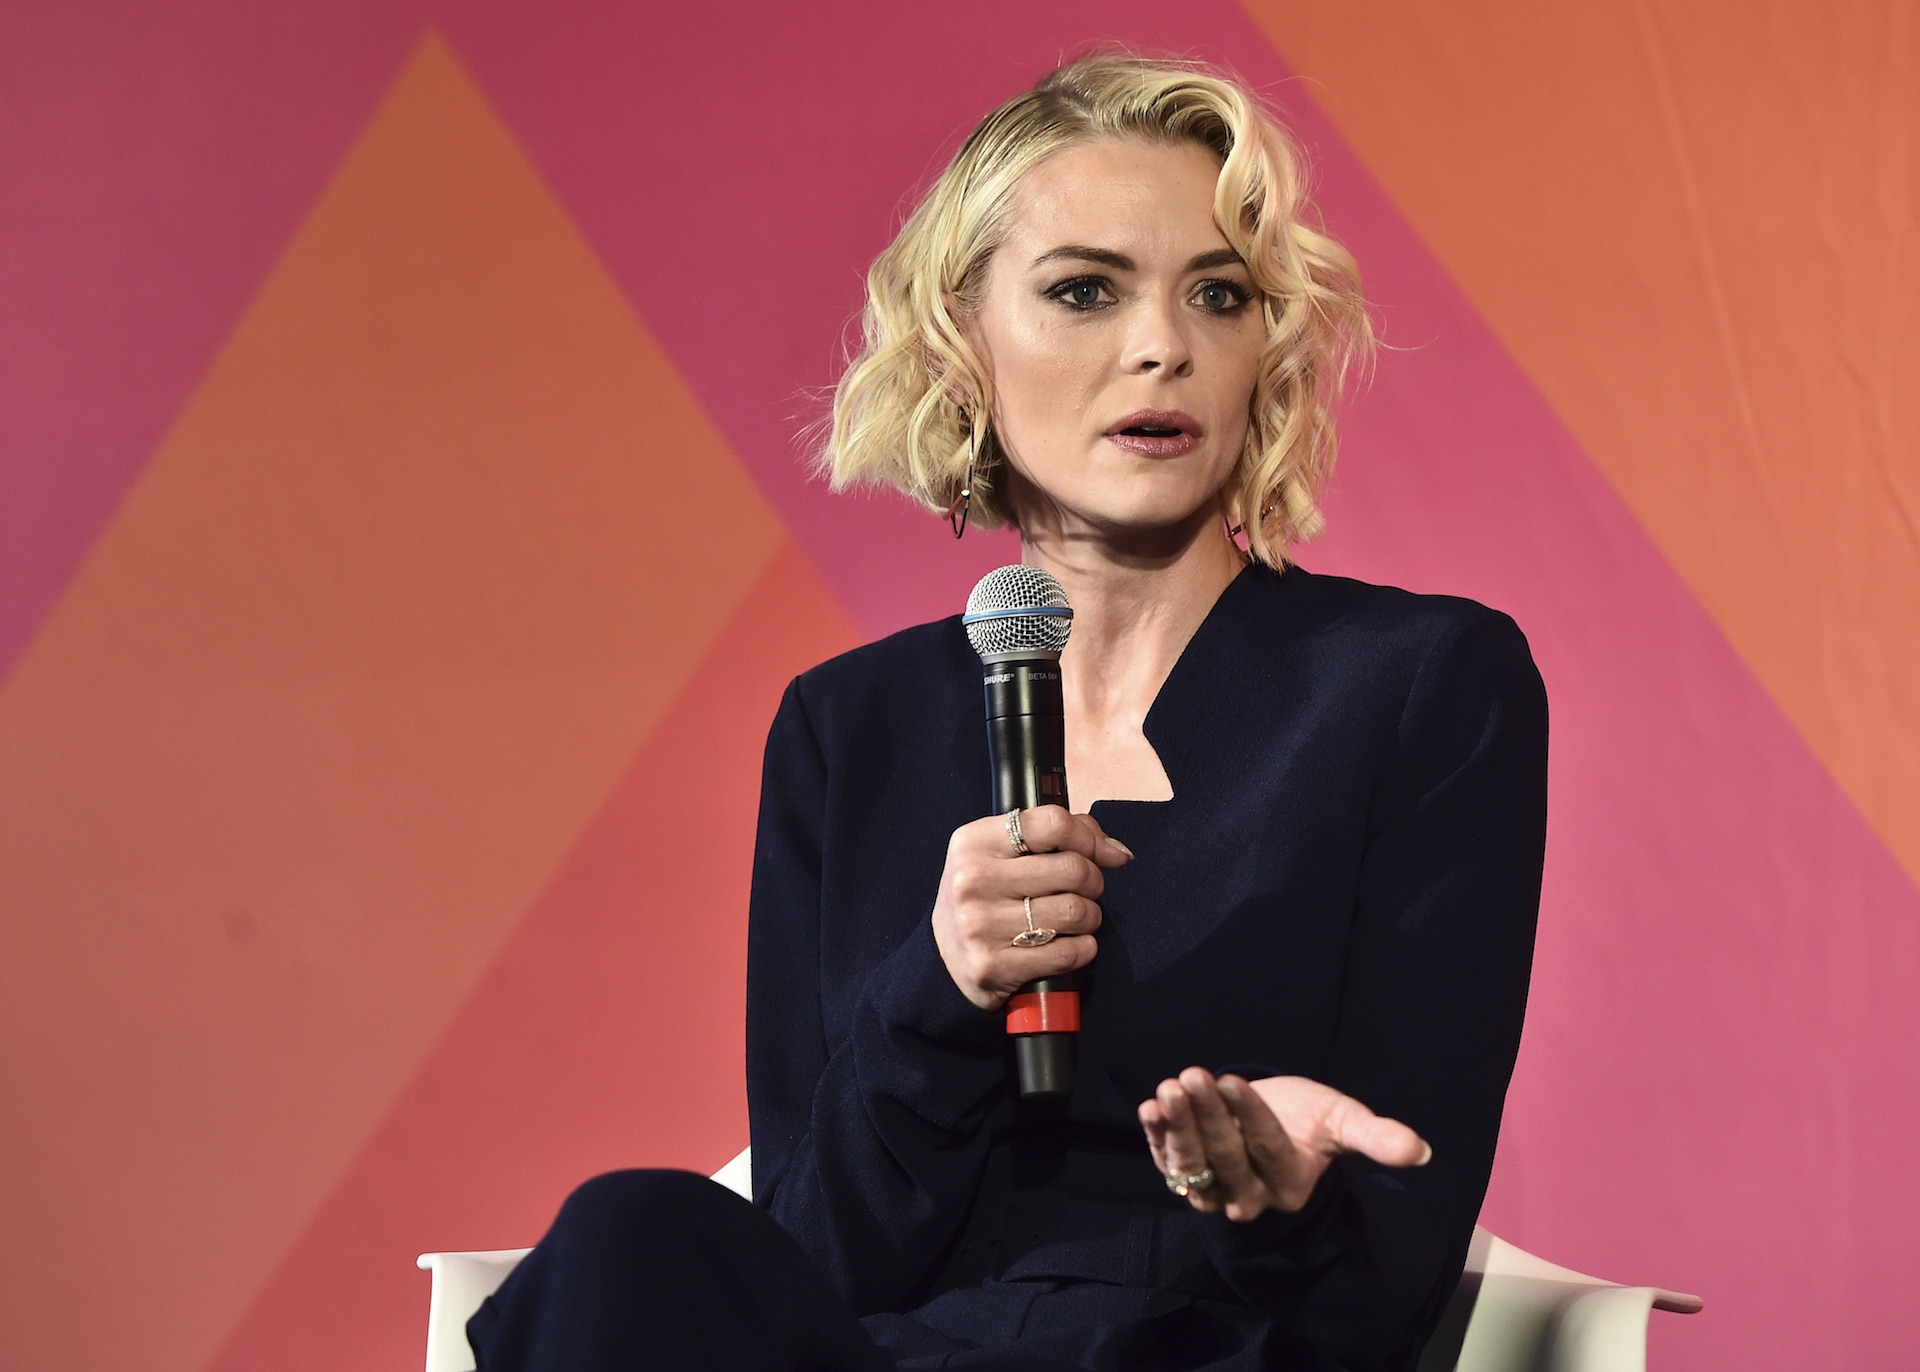 Jaime King on Why She Decided to Open Up About Her Endometriosis